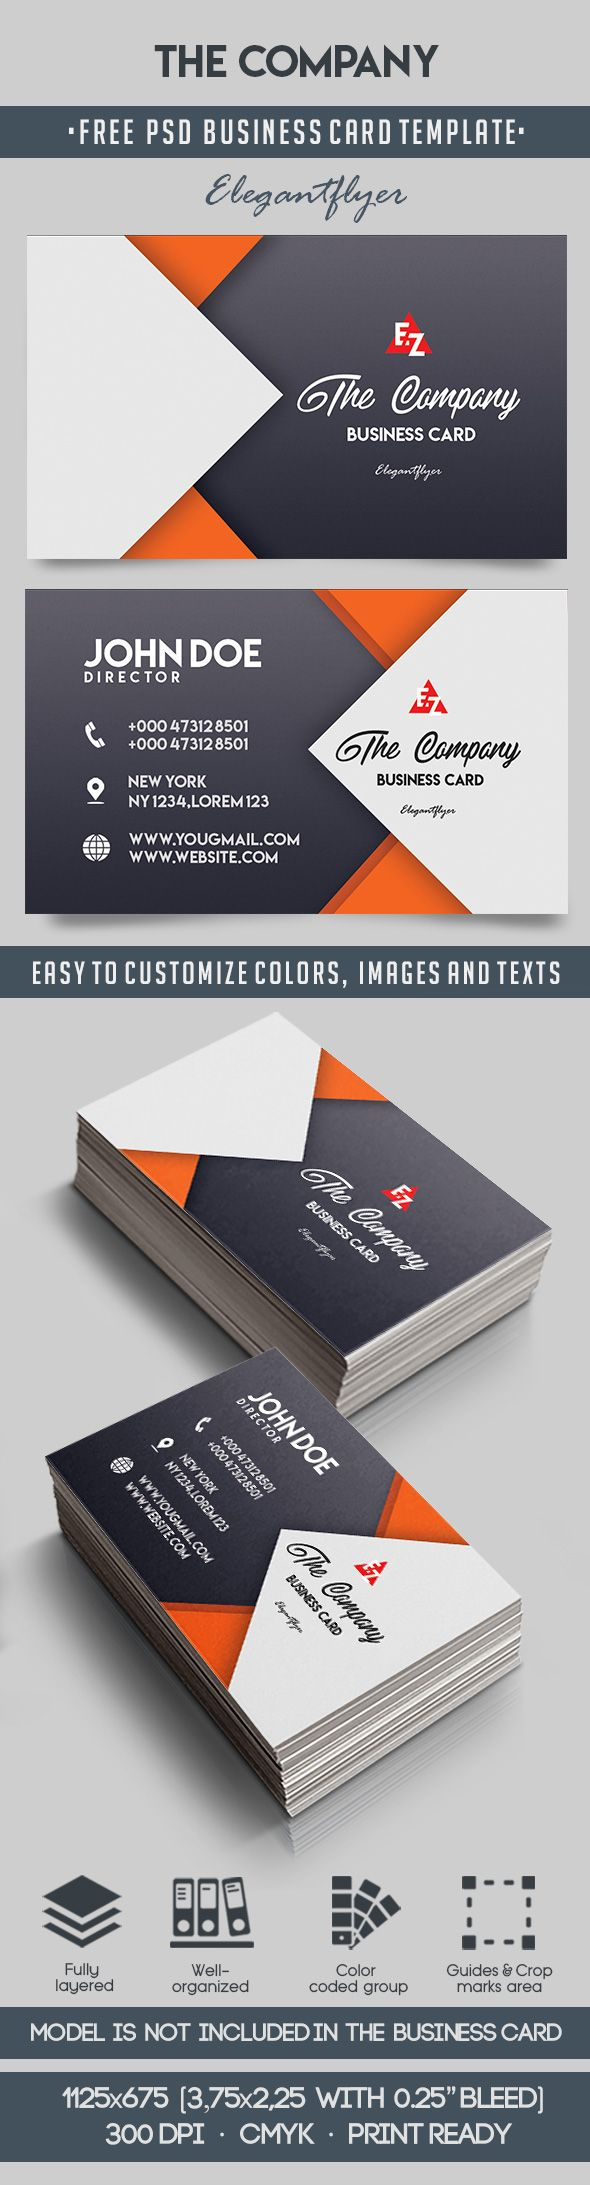 The Company – Free Business Card Templates PSD